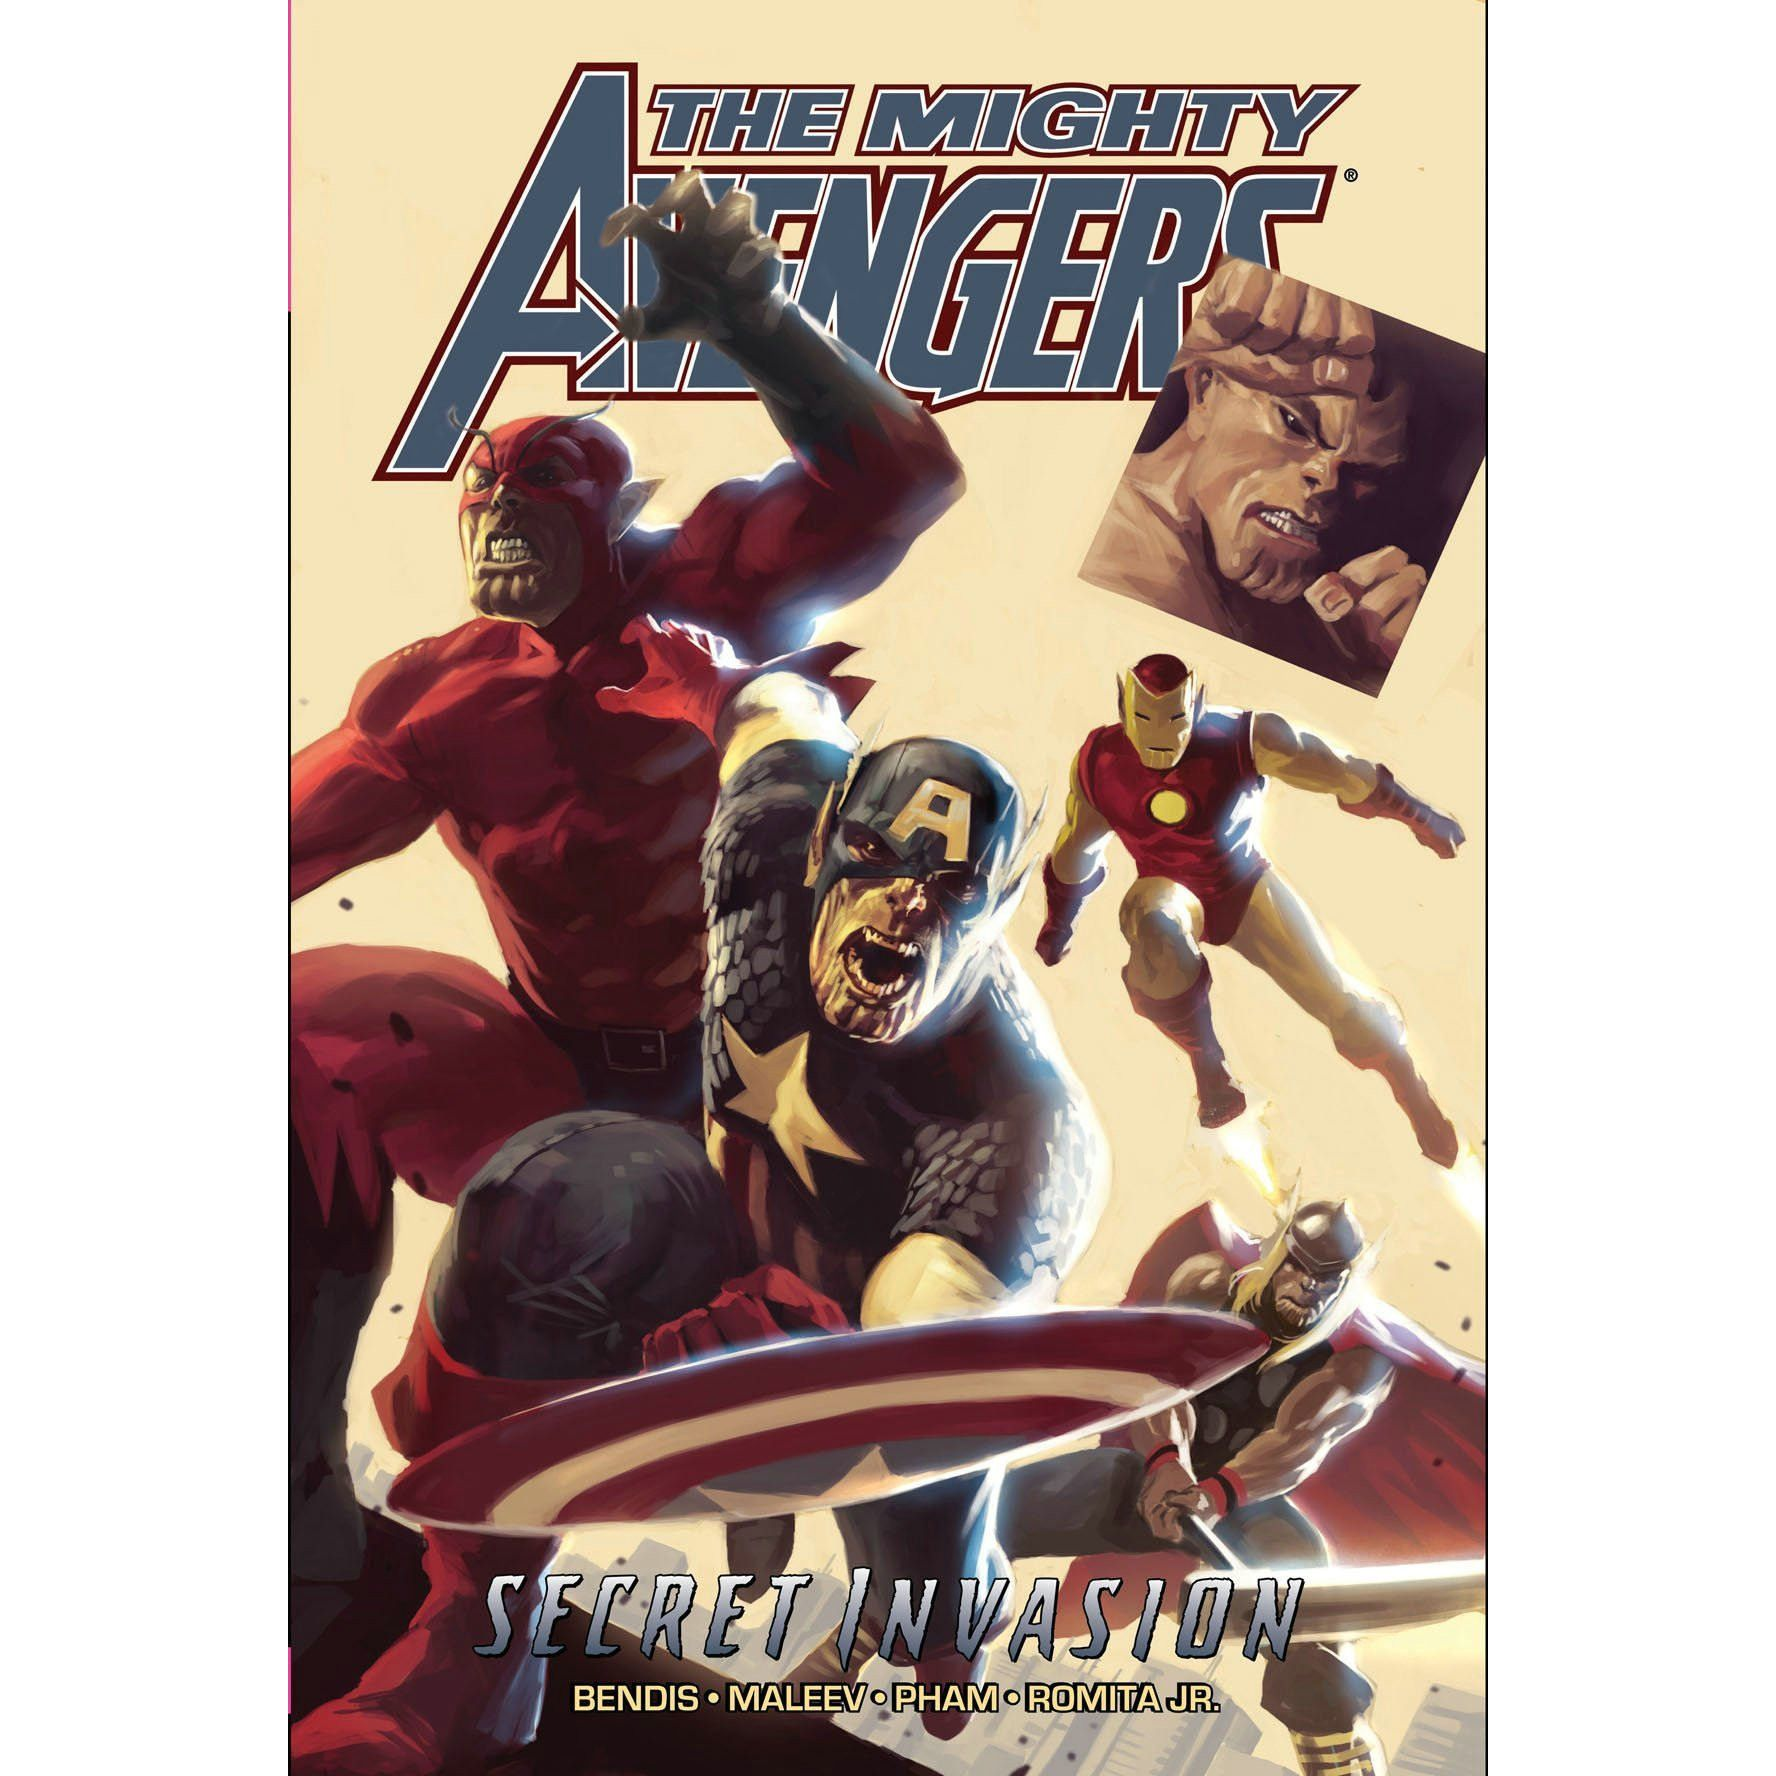 The Mighty Avengers Secret Invasion TP Vol 3 Uncanny!